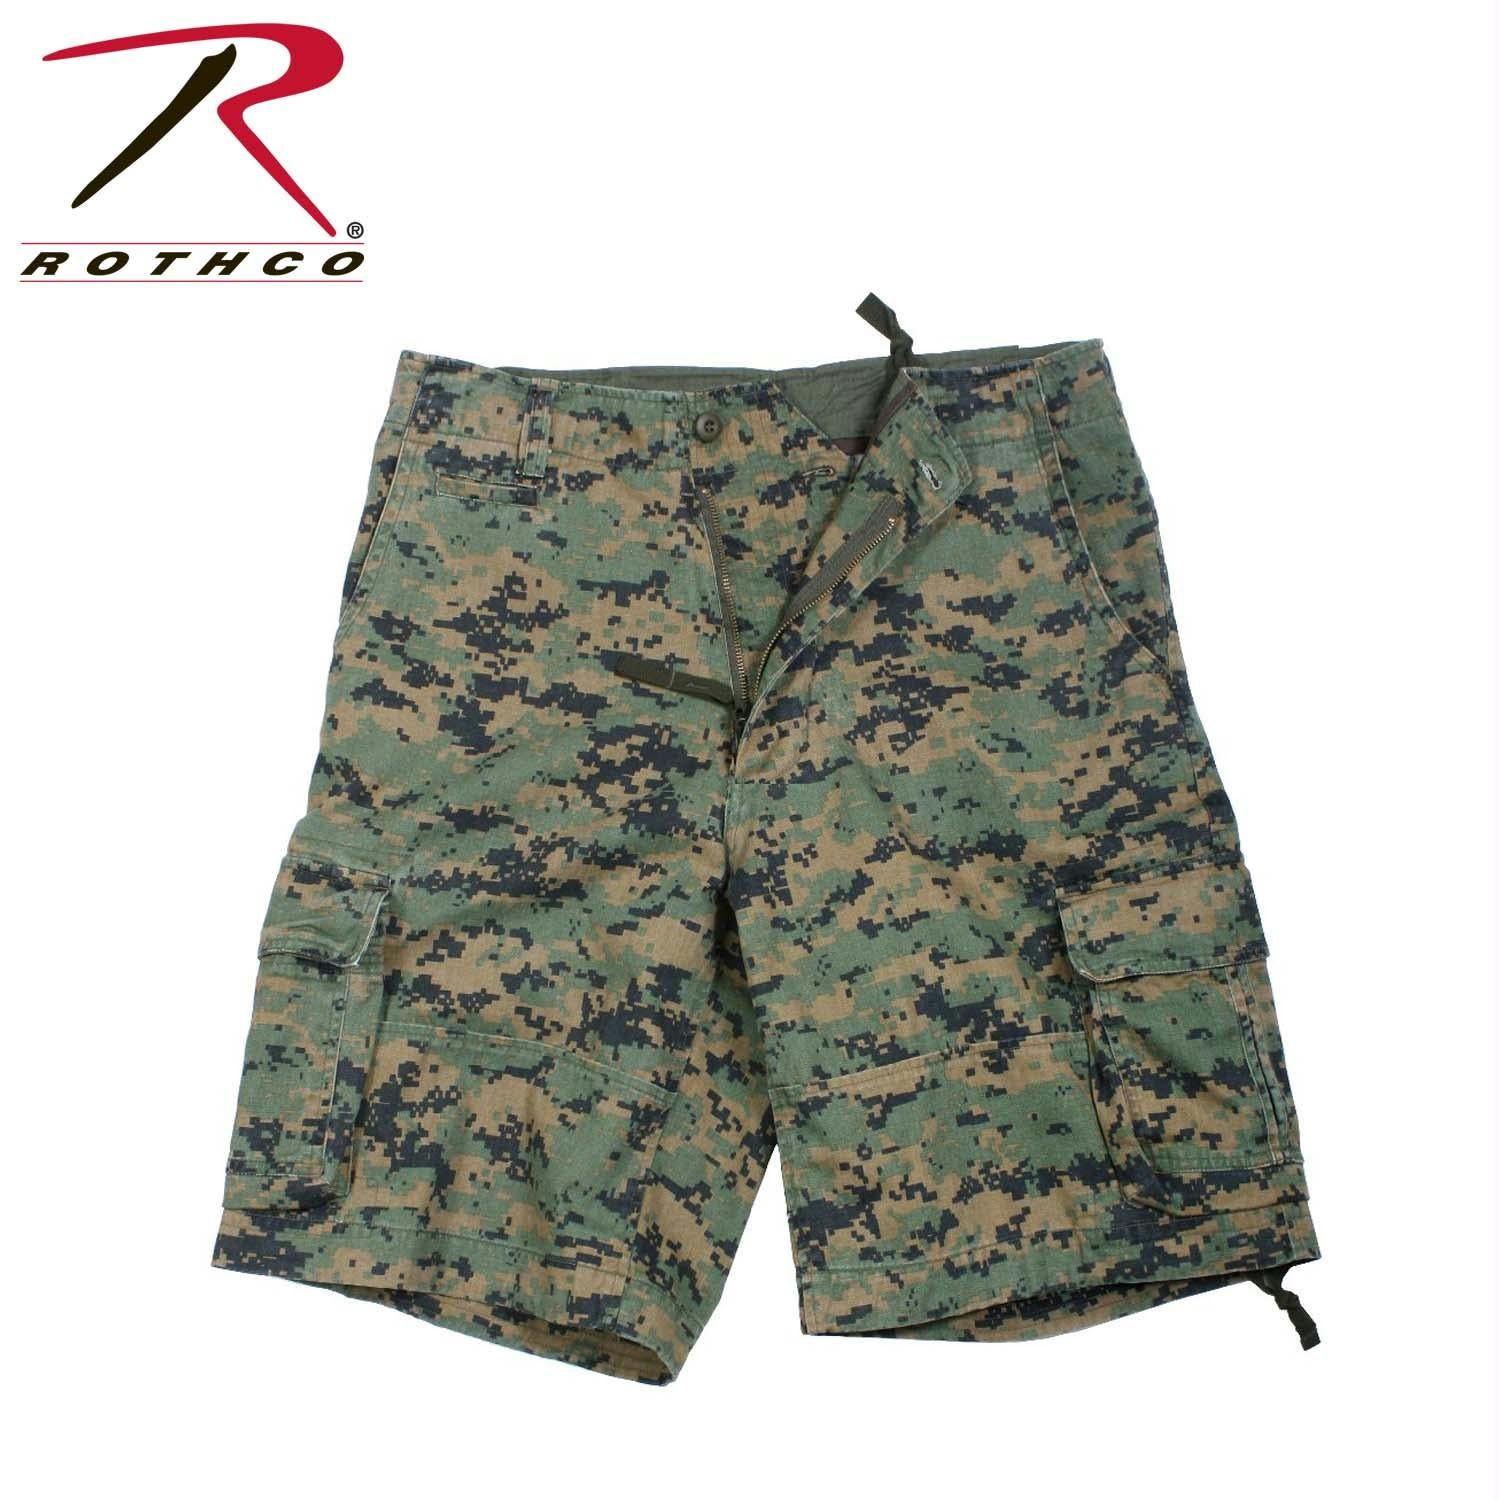 Rothco Vintage Camo Infantry Utility Shorts - Woodland Digital Camo / XS